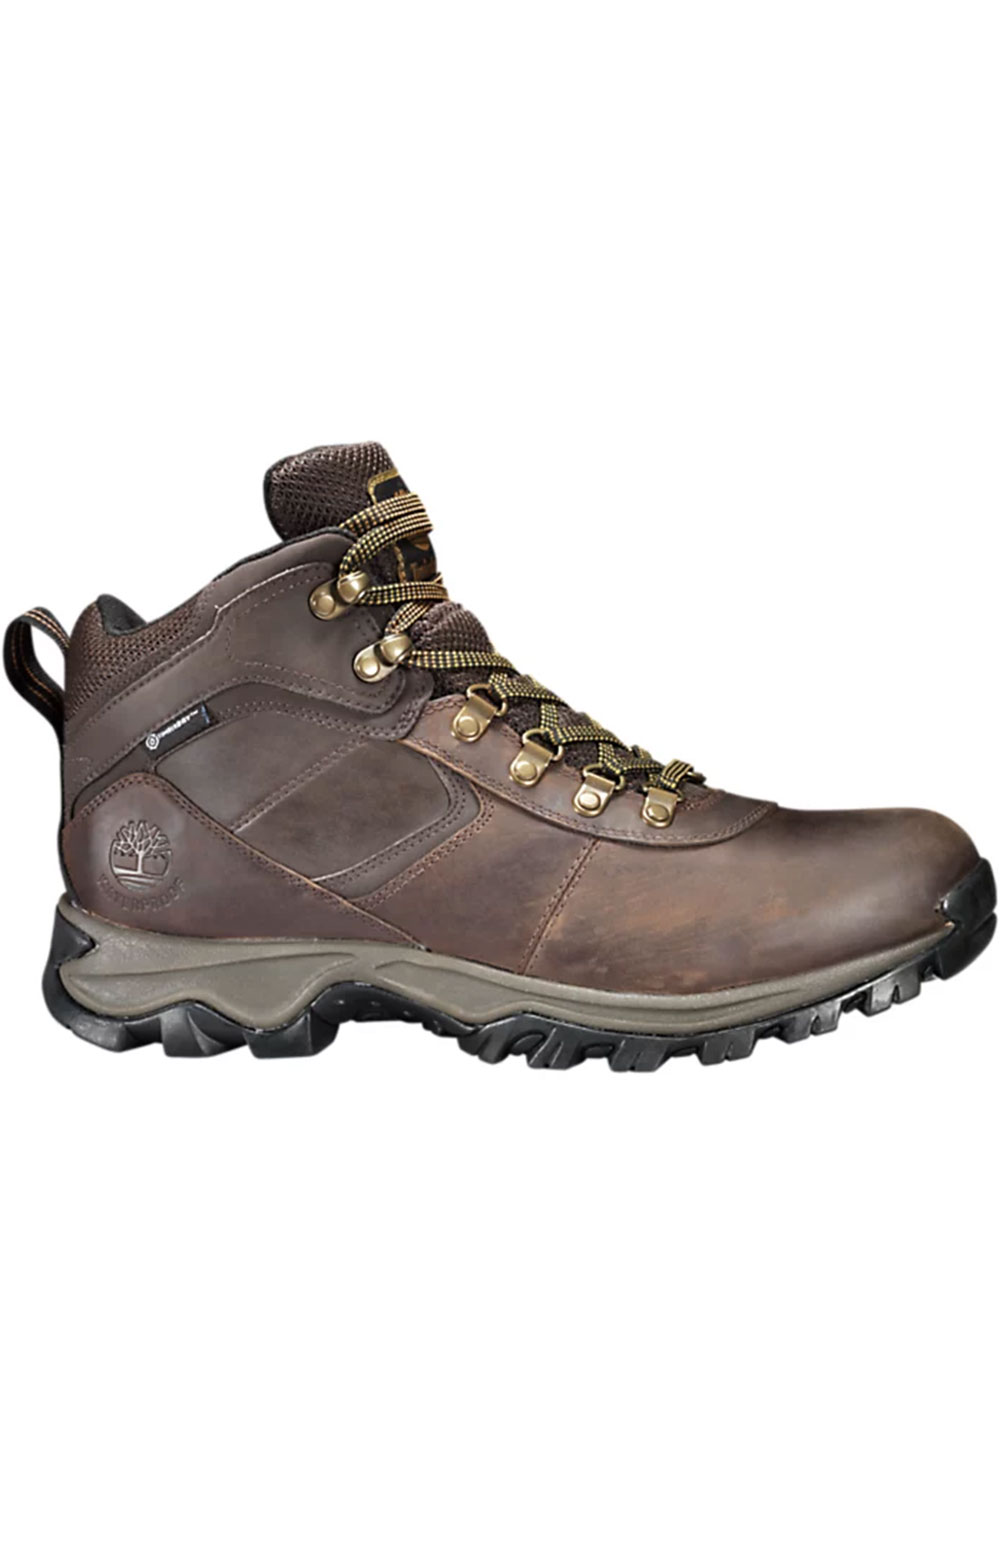 (TB02730R242) Mt. Maddsen Mid Waterproof Hiking Boots - Dark Brown